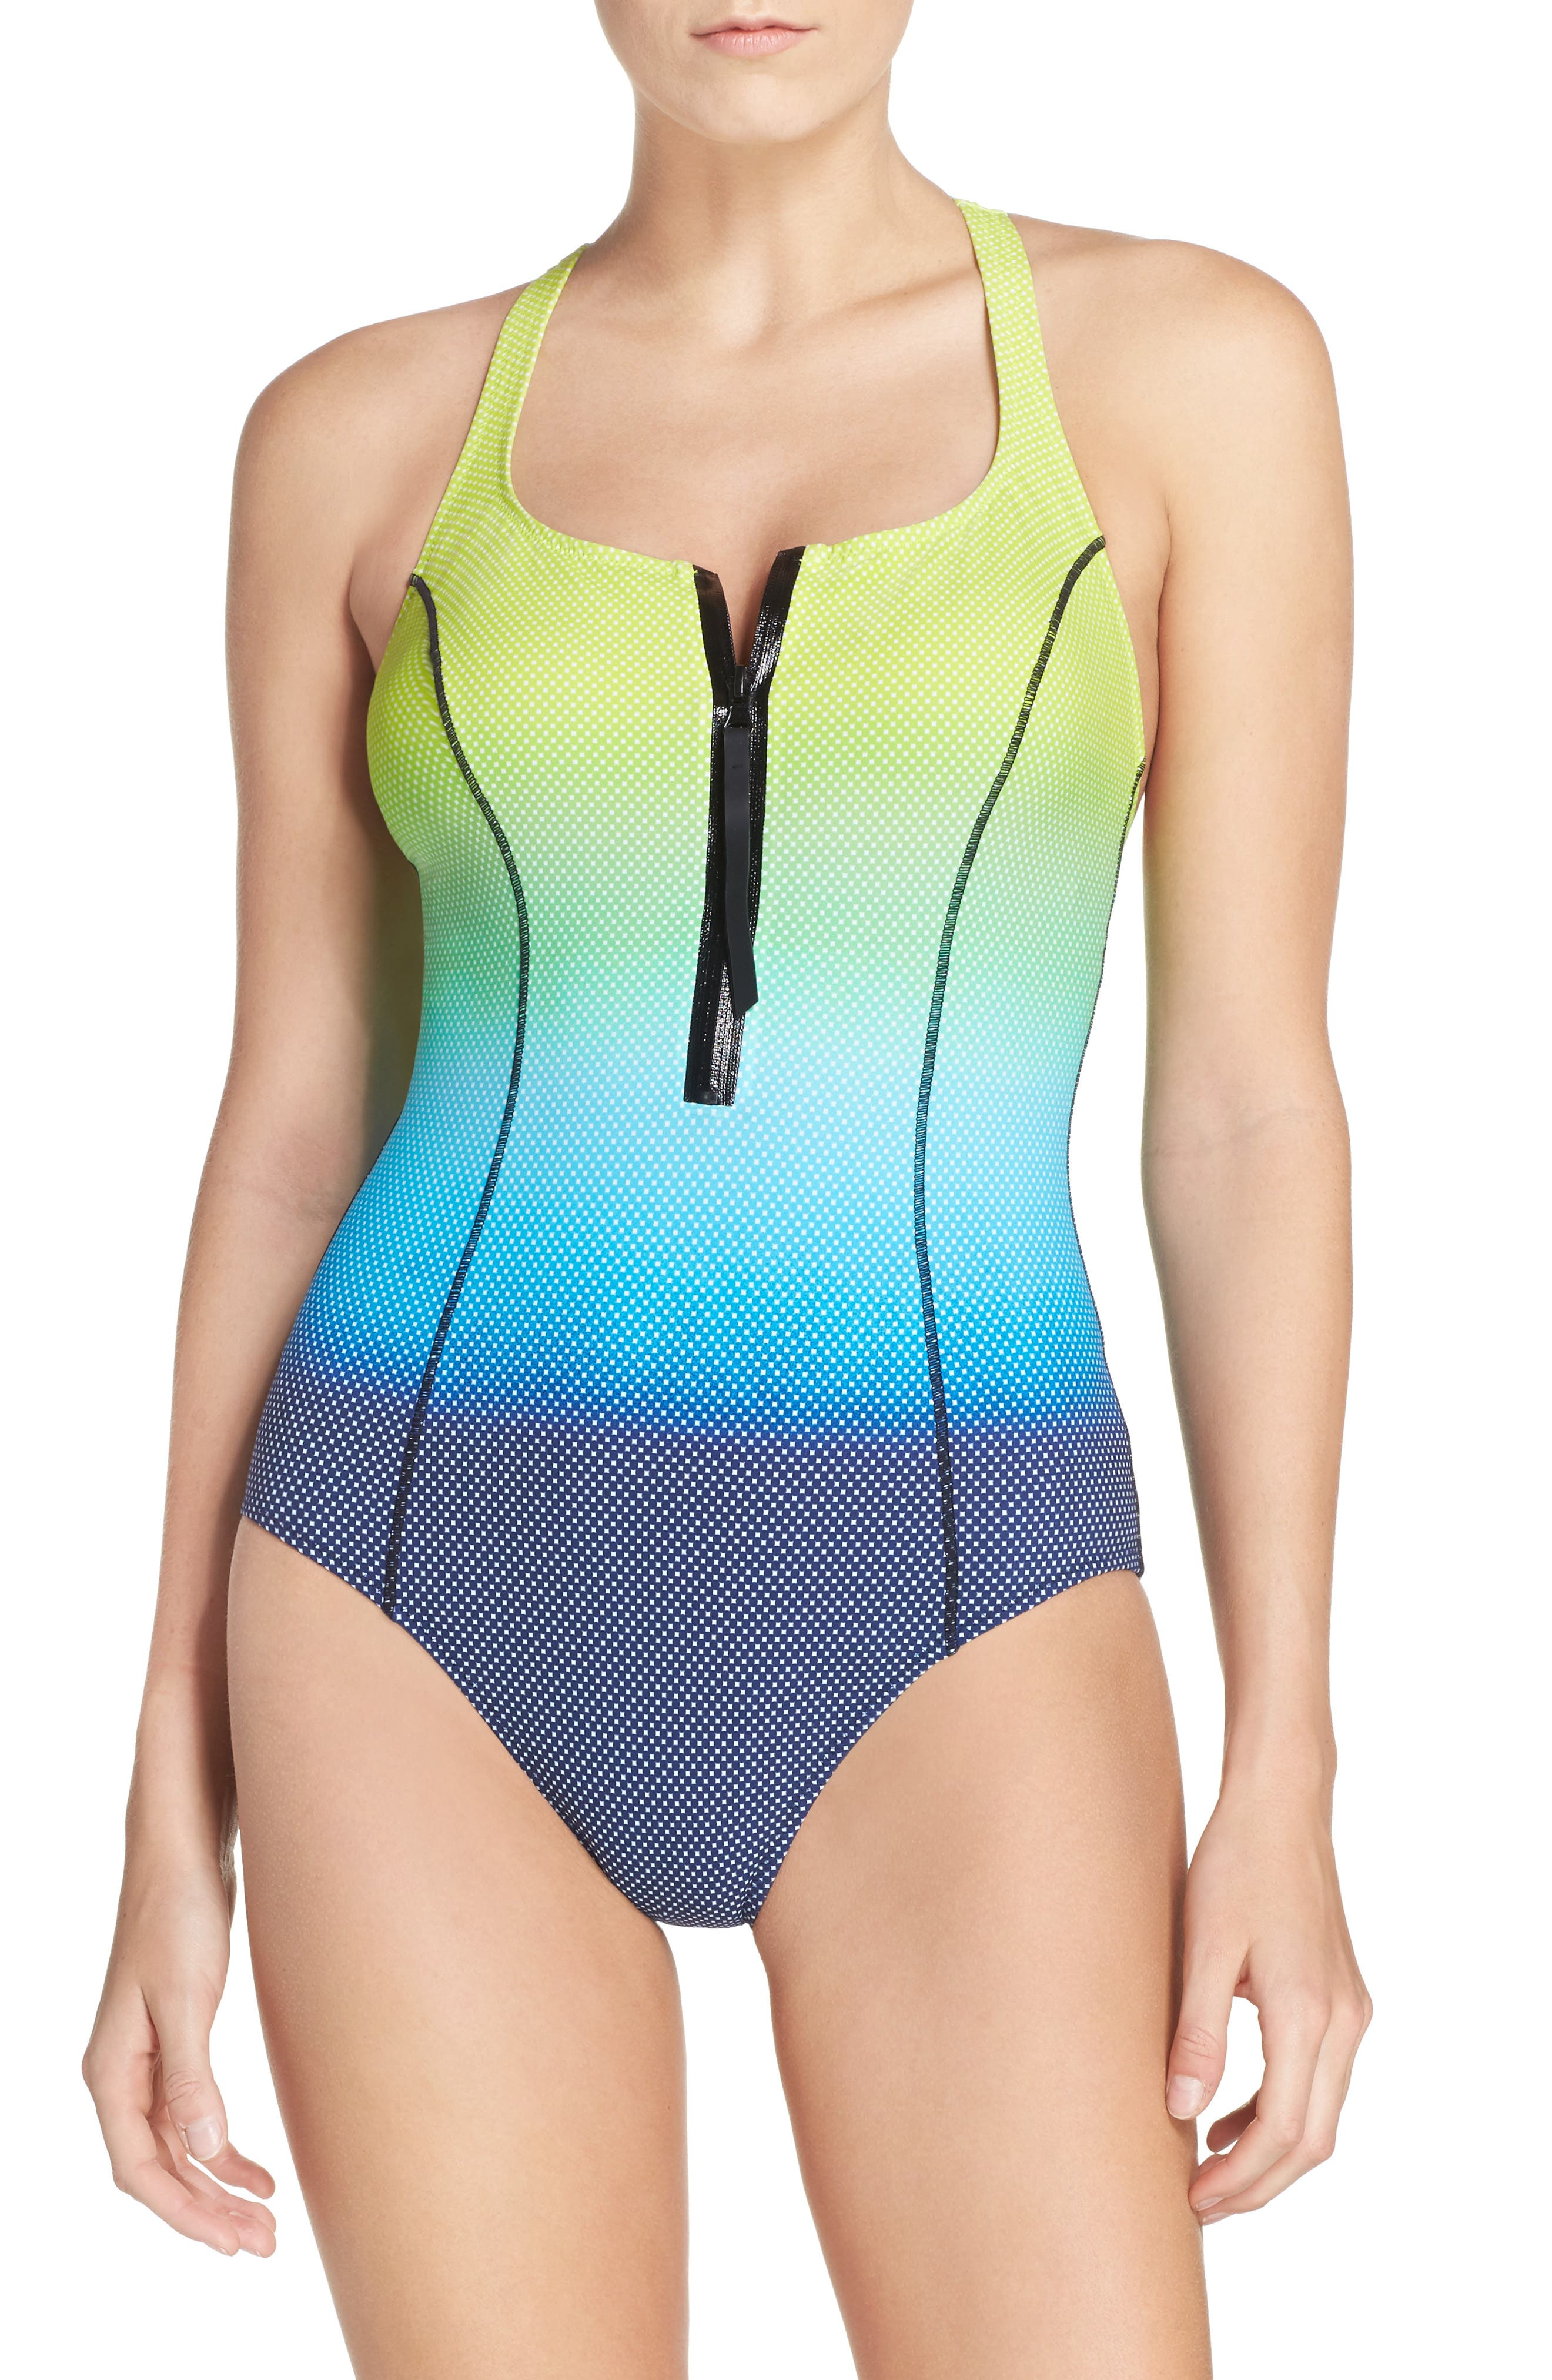 Alternate Image 1 Selected - Profile by Gottex One-Piece Zip Swimsuit